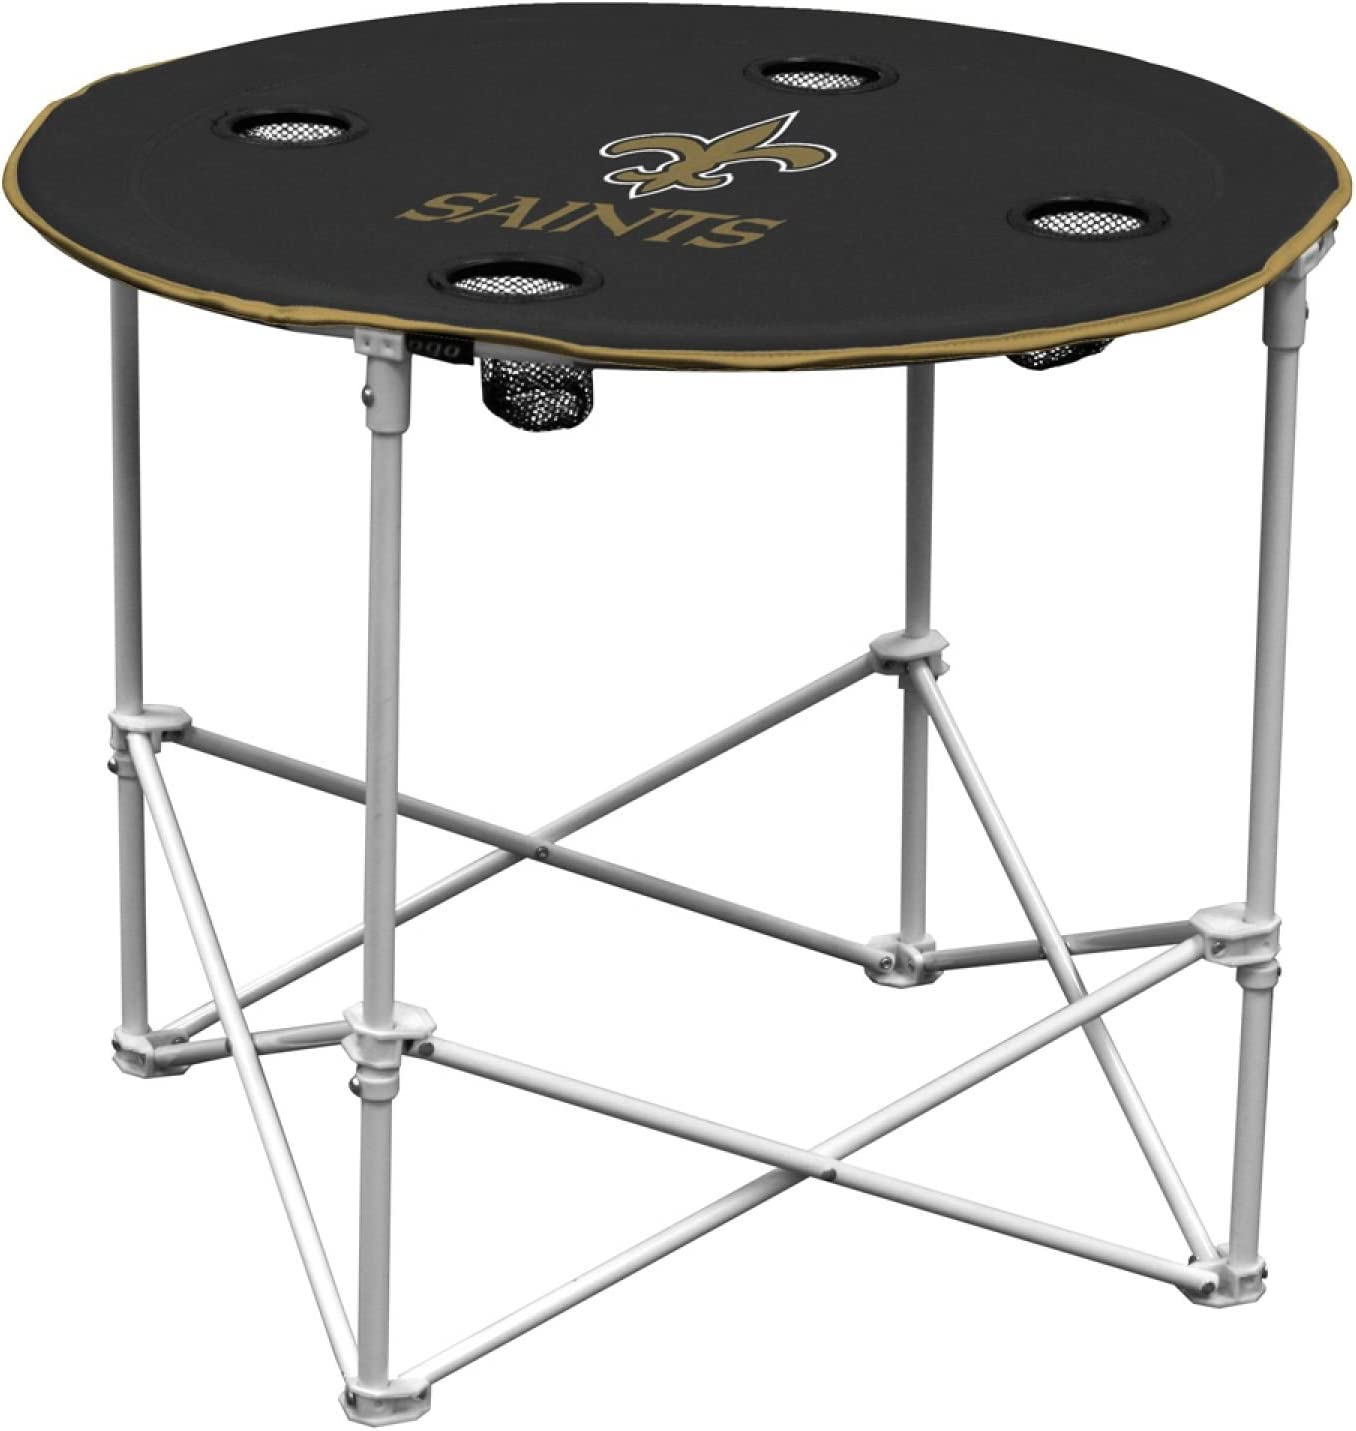 New Orleans Saints  Collapsible Round Table with 4 Cup Holders and Carry Bag